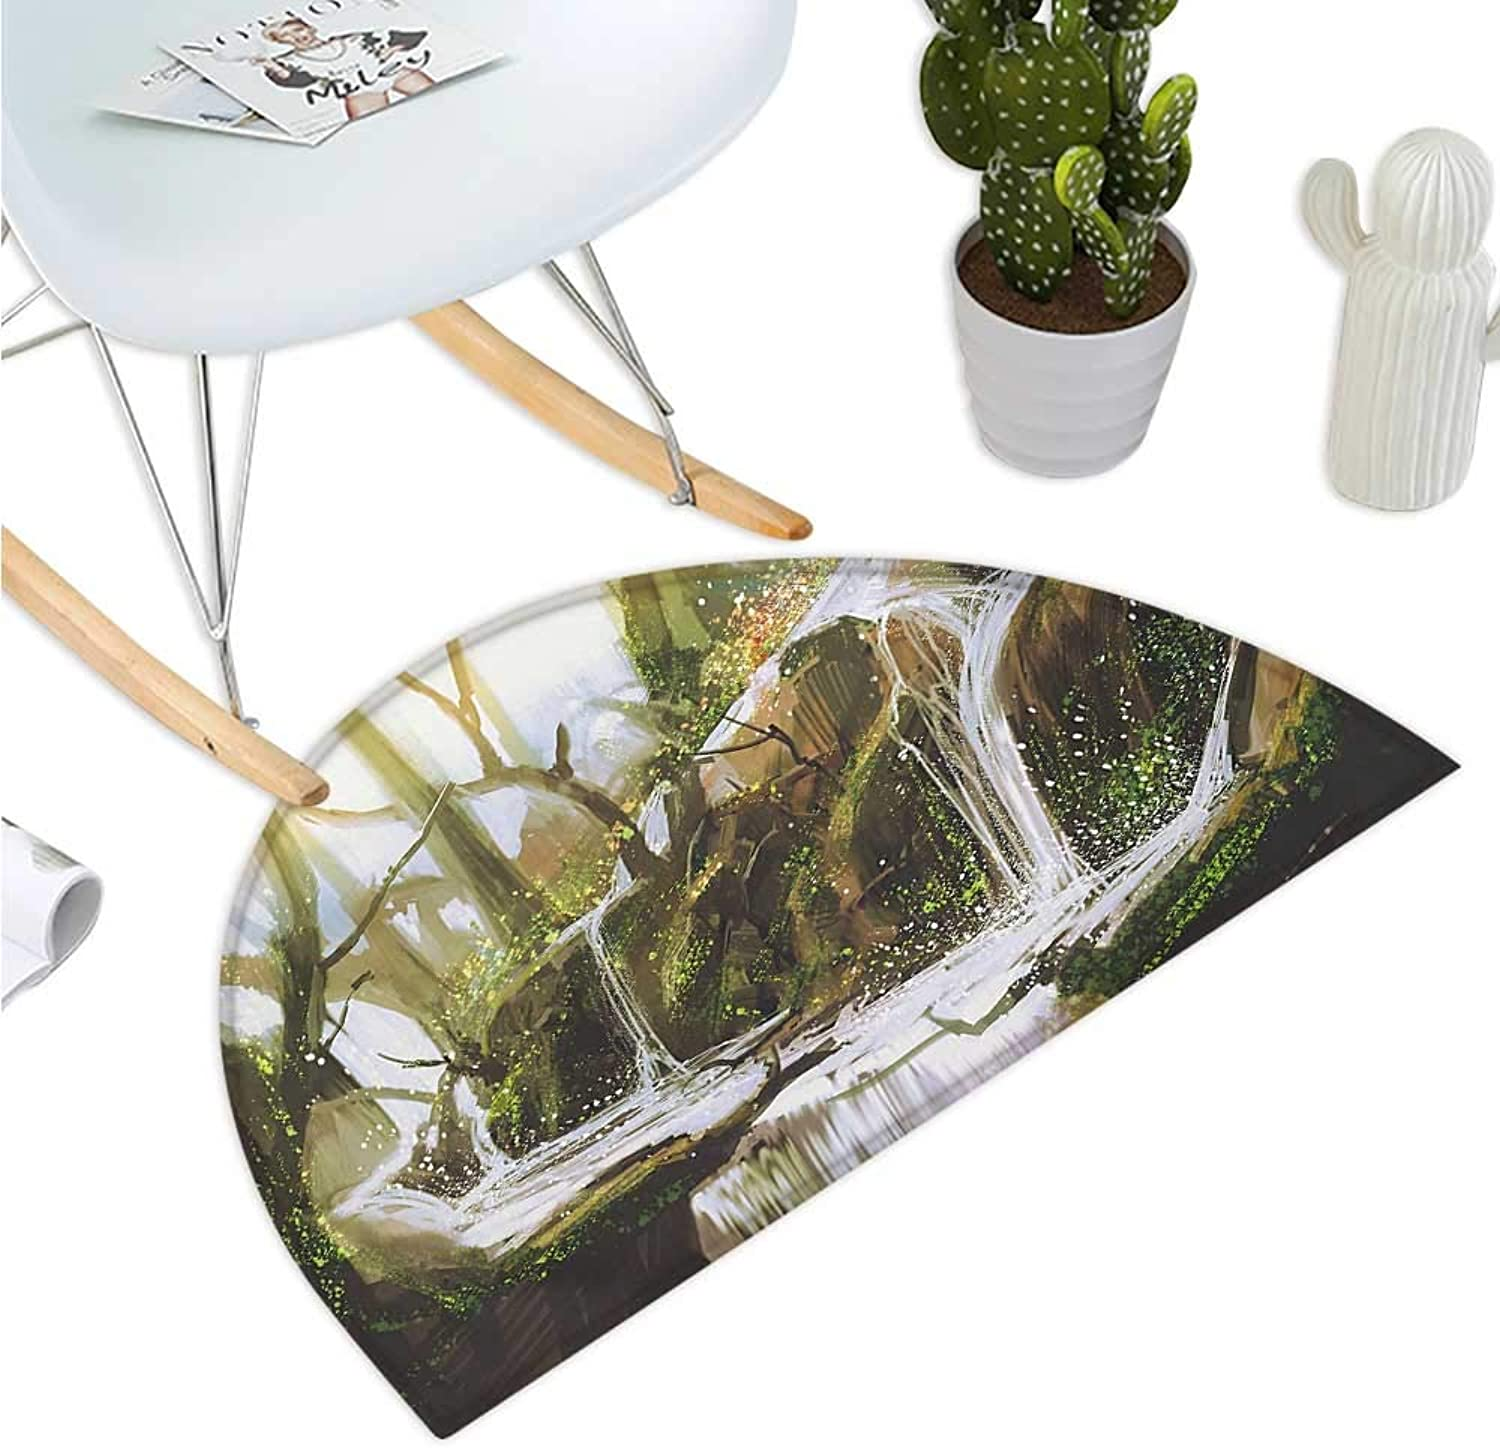 Fantasy Semicircular Cushion Cascade Stream Flows into The Creek in a Realistic Way Secret Paradise Paint Print Entry Door Mat H 39.3  xD 59  White Brown